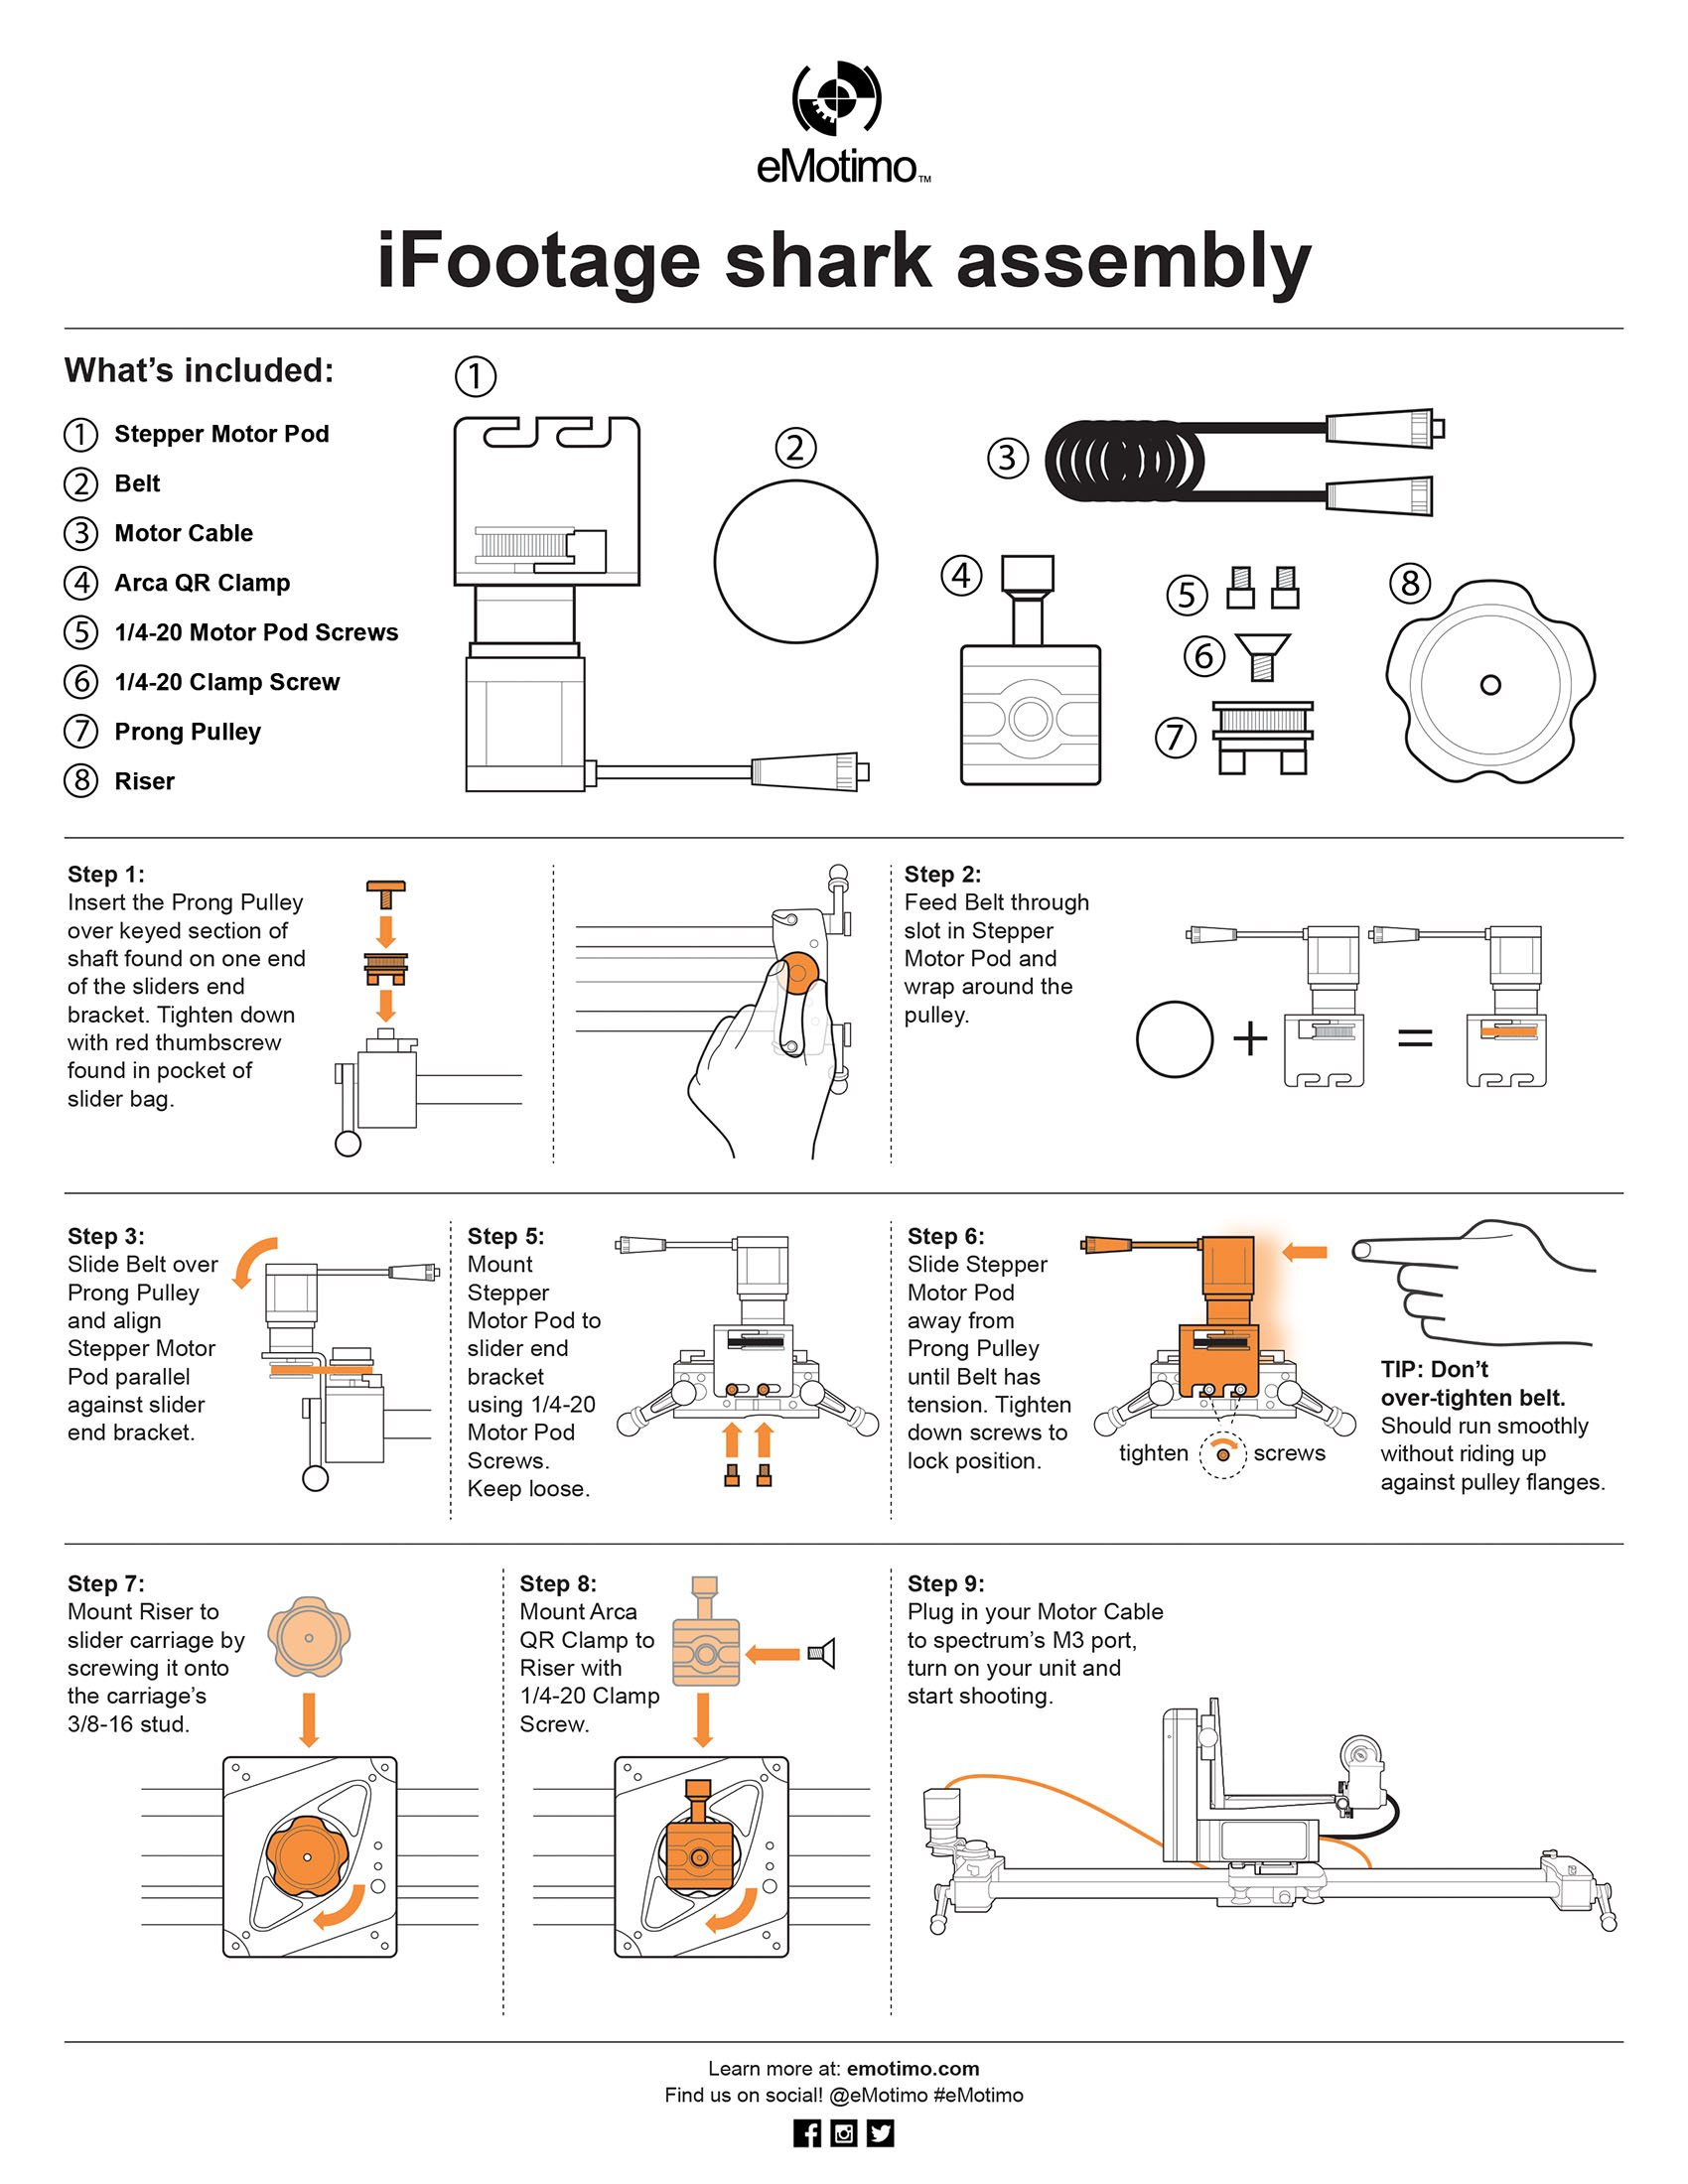 iFootage_shark_assembly_instructions.jpg